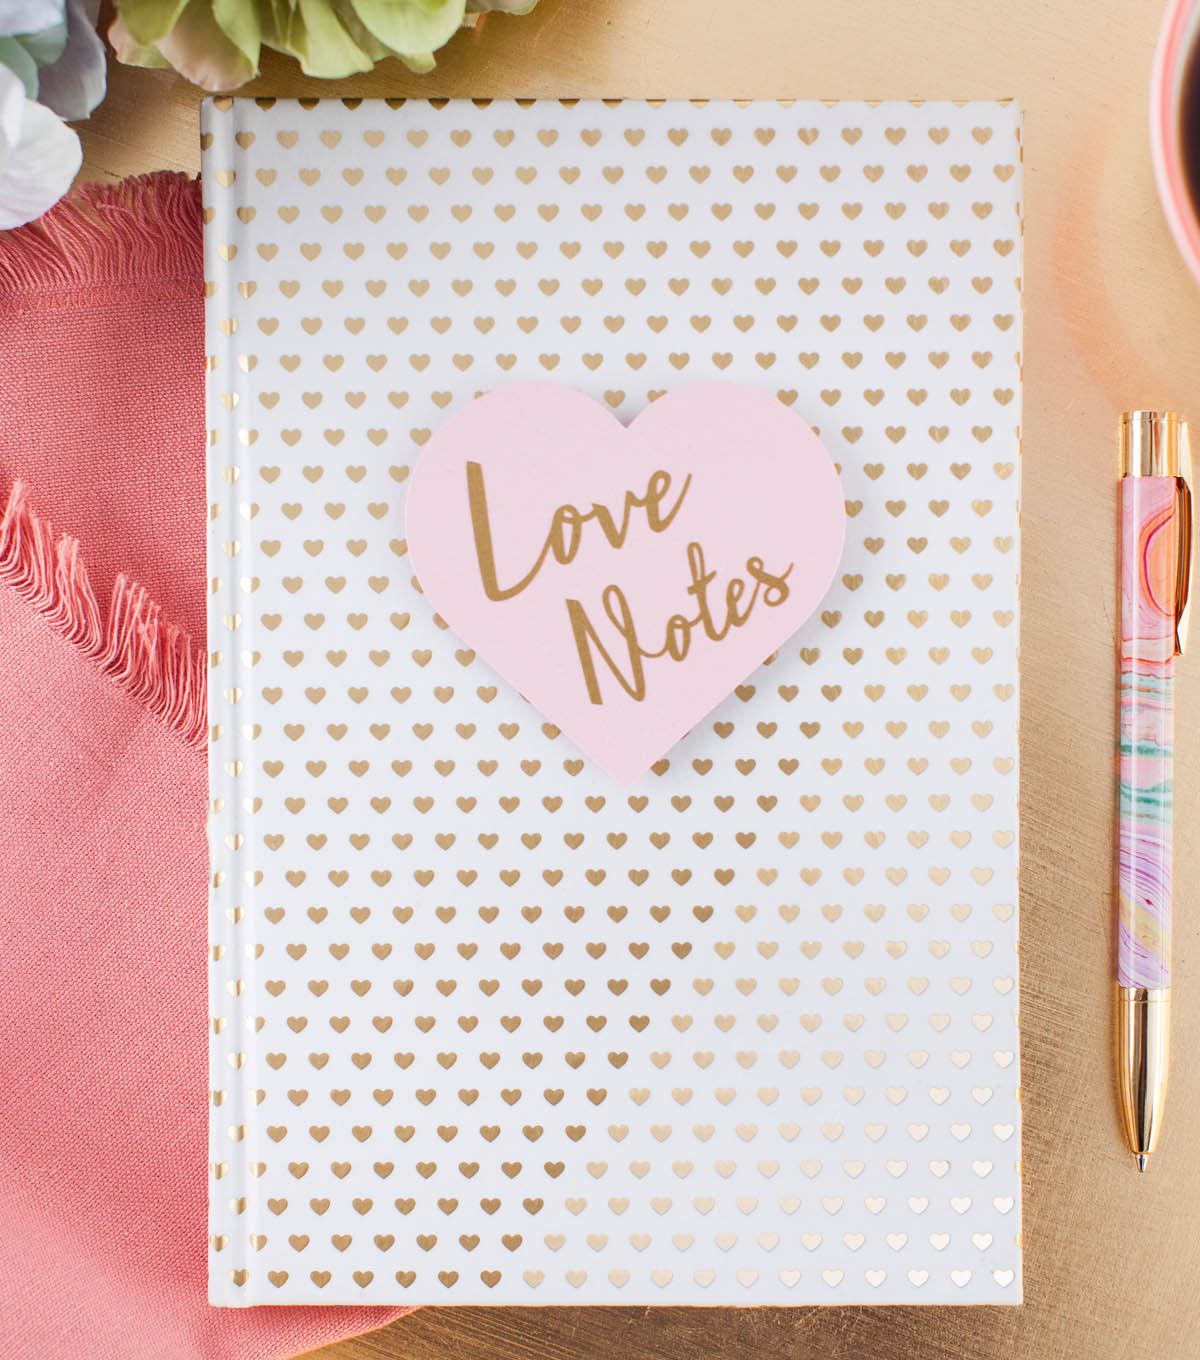 How To Make A Love Notes Notebook